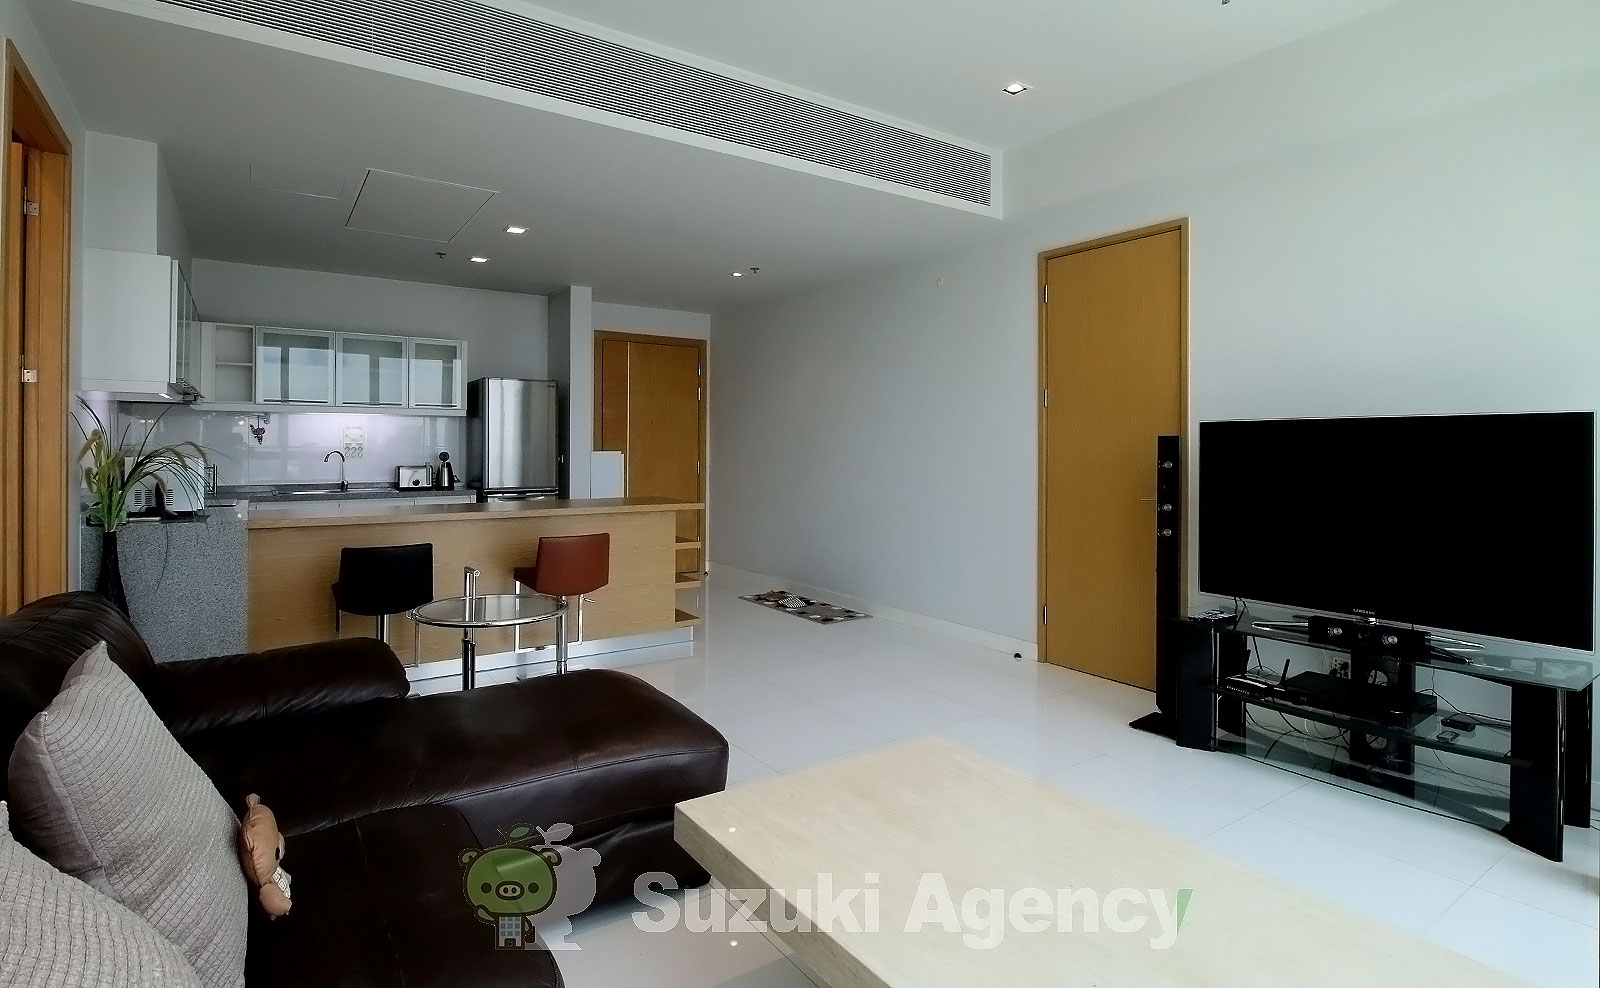 Millennium Residence:1Bed Room Photos No.4